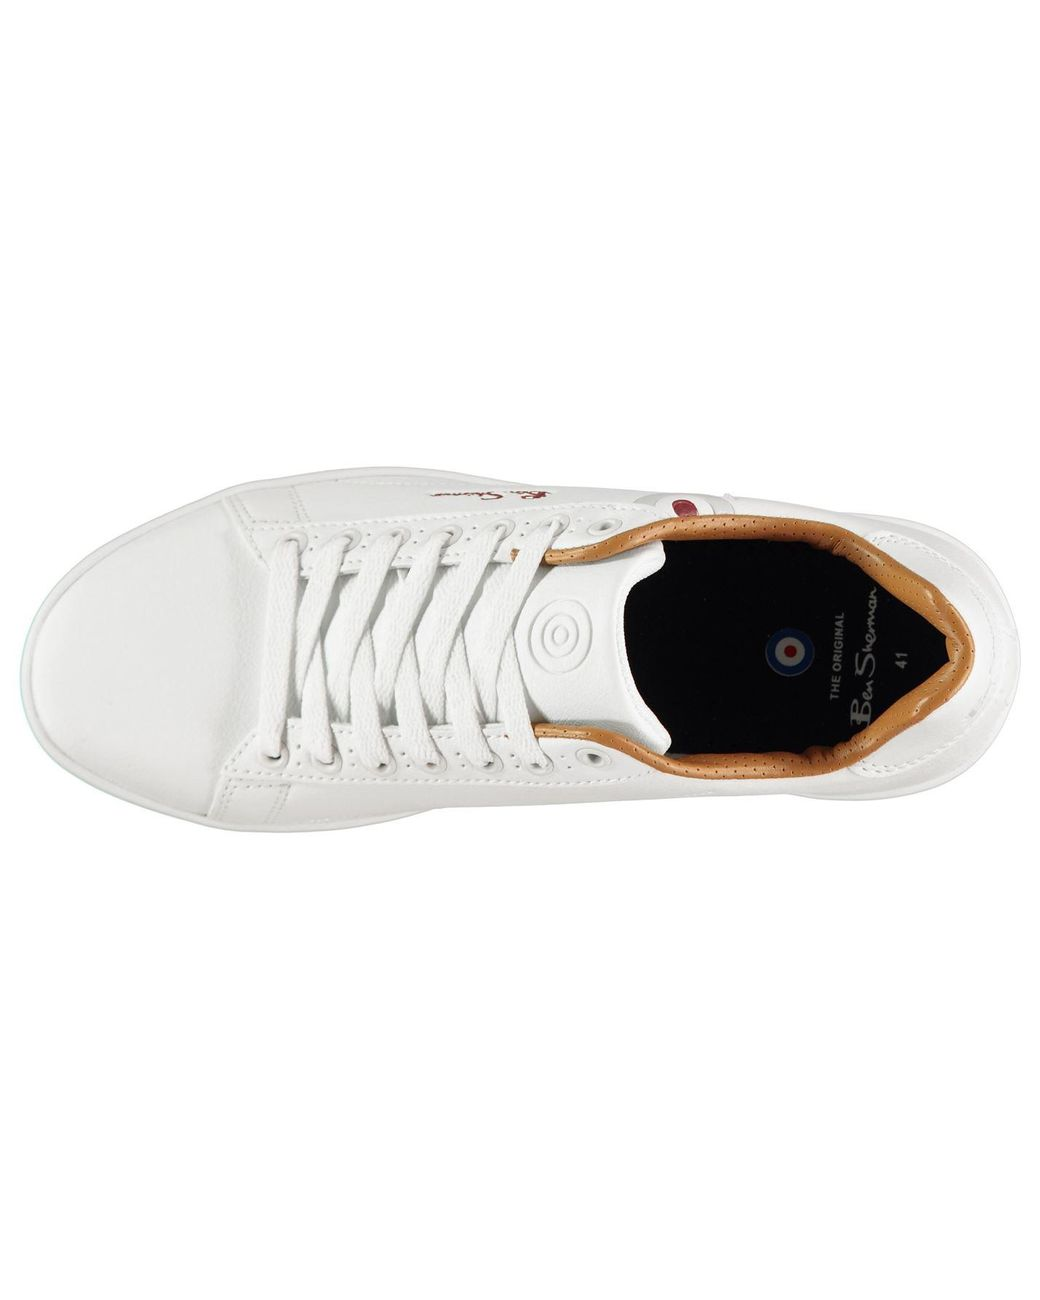 Ben Sherman Target Sneakers Mens Gents Low Laces Fastened Padded Ankle Collar